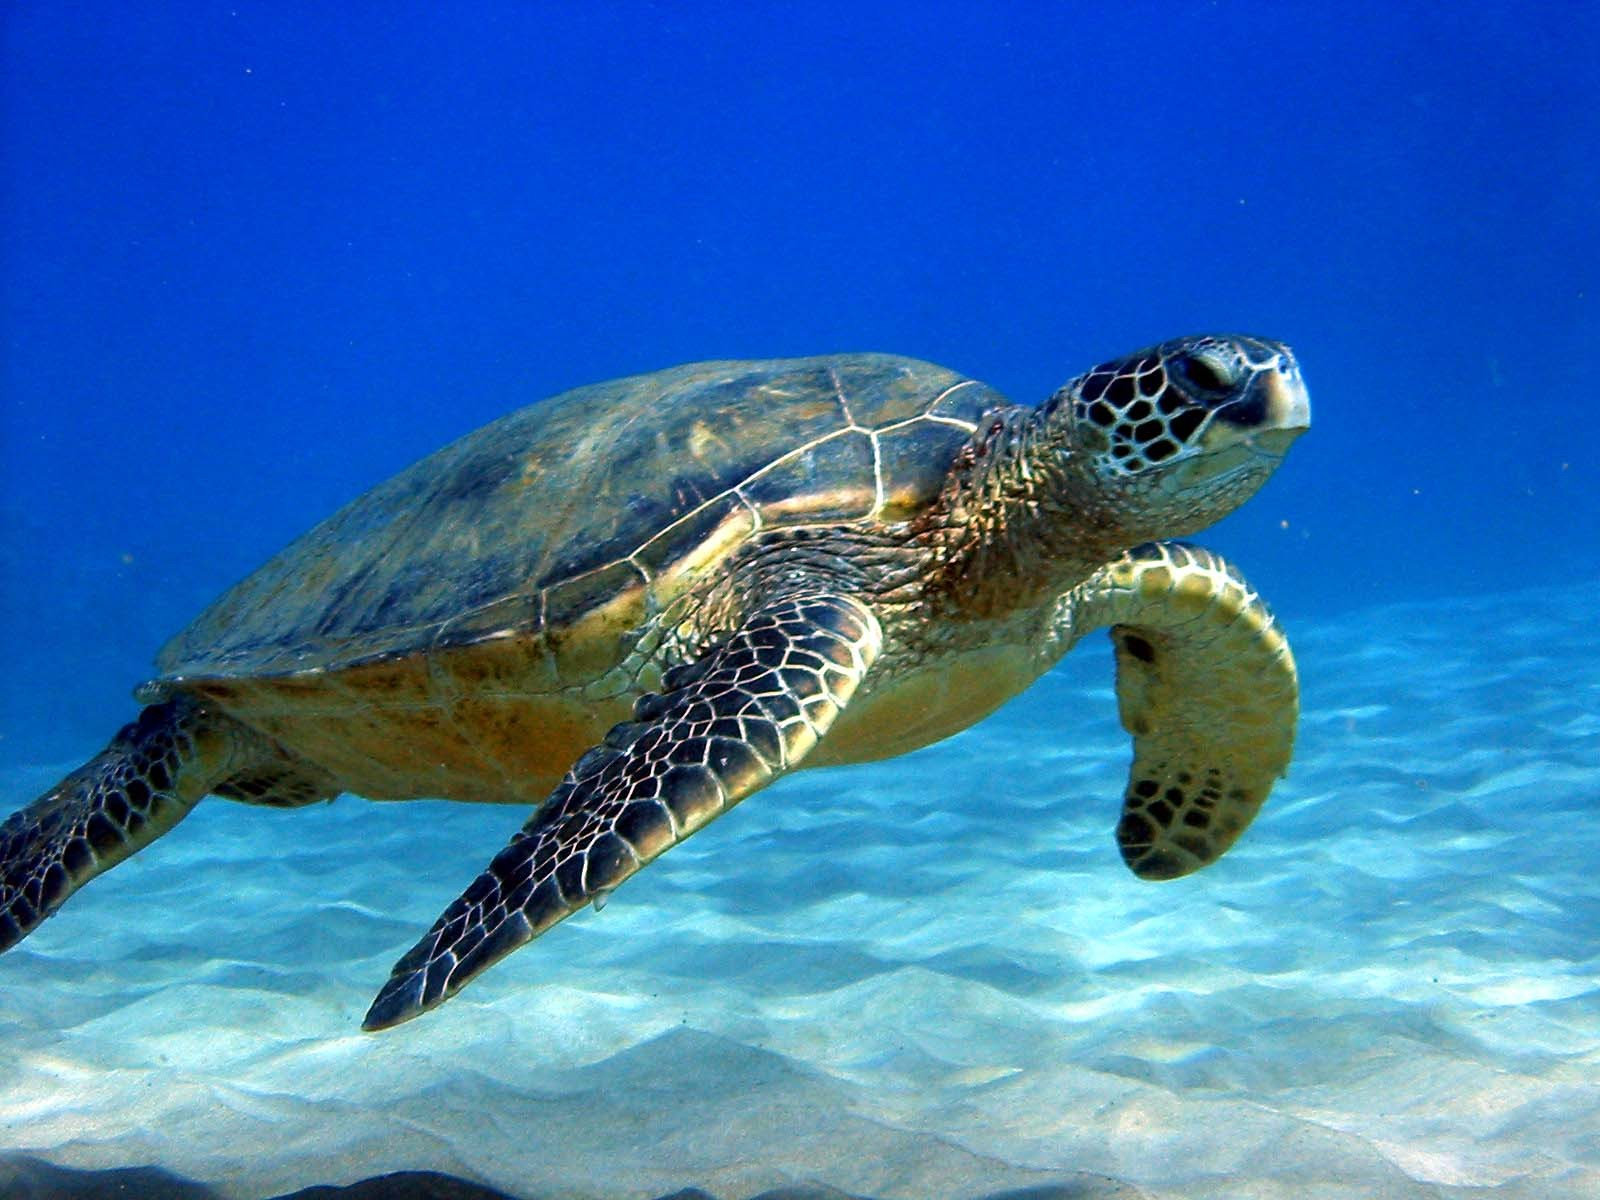 There are at least two types of sea turtles found in the Steps and ...